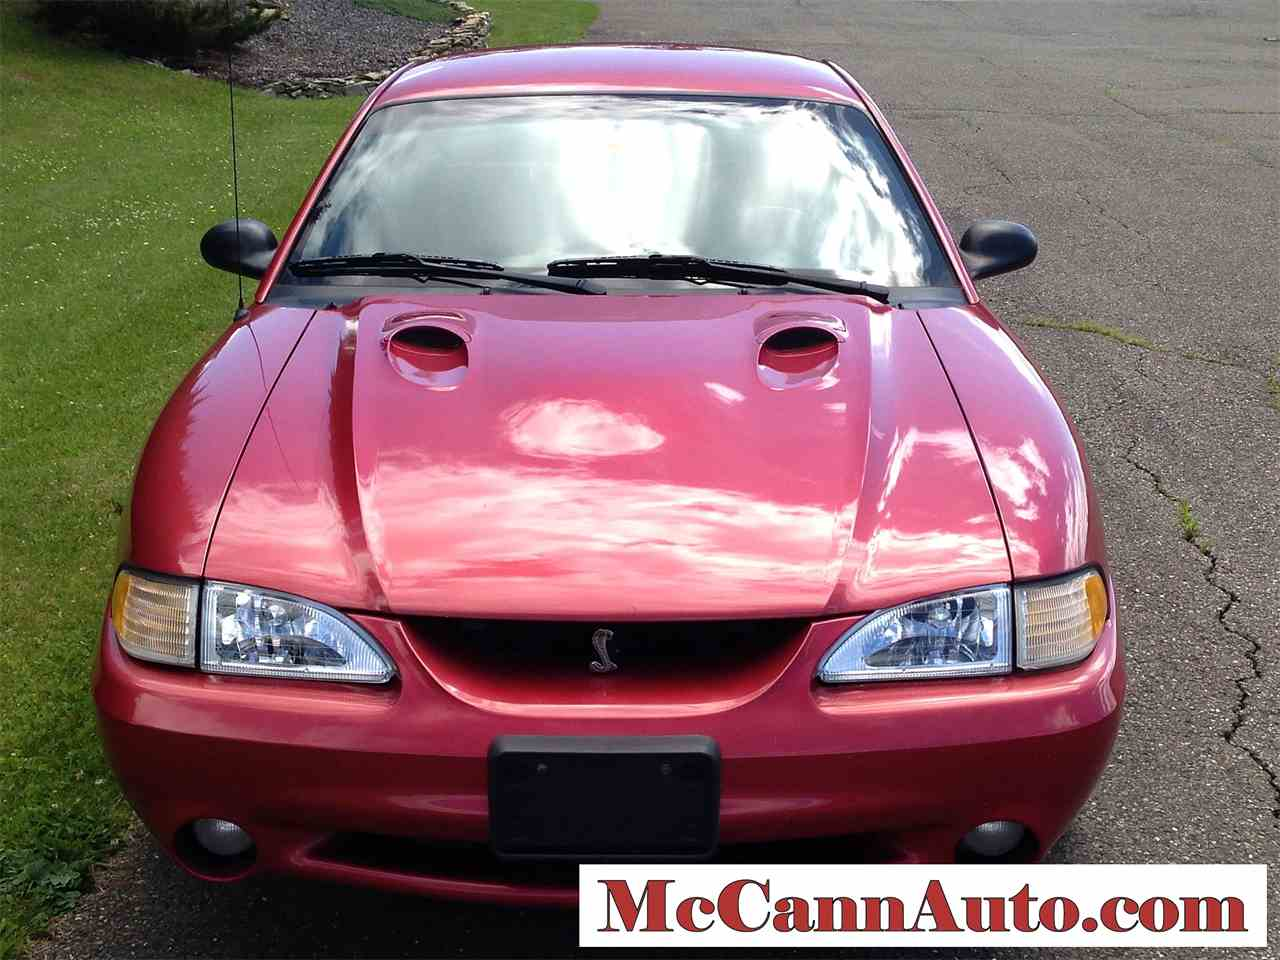 Large Picture of '98 Mustang Cobra - J46N